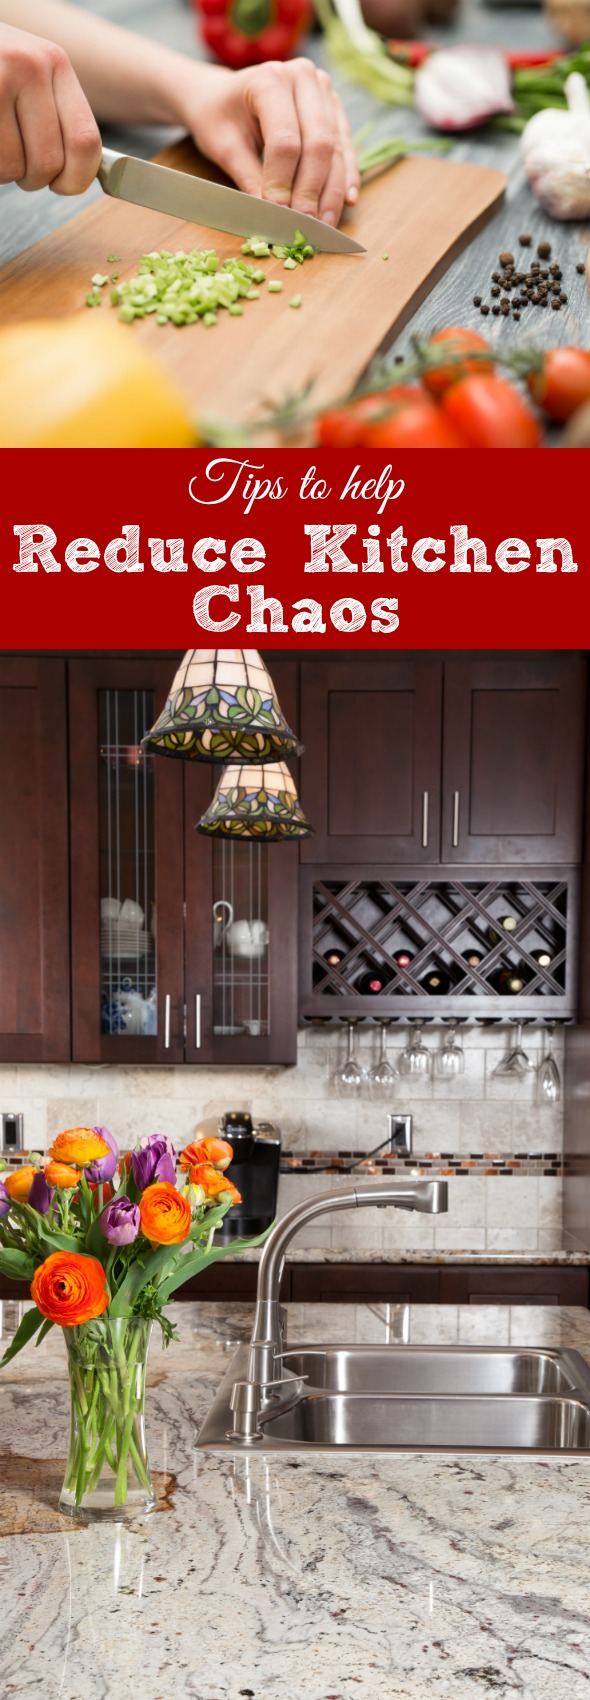 Tips to help reduce kitchen chaos #organizing #cleaning #homemanagement #kitchen